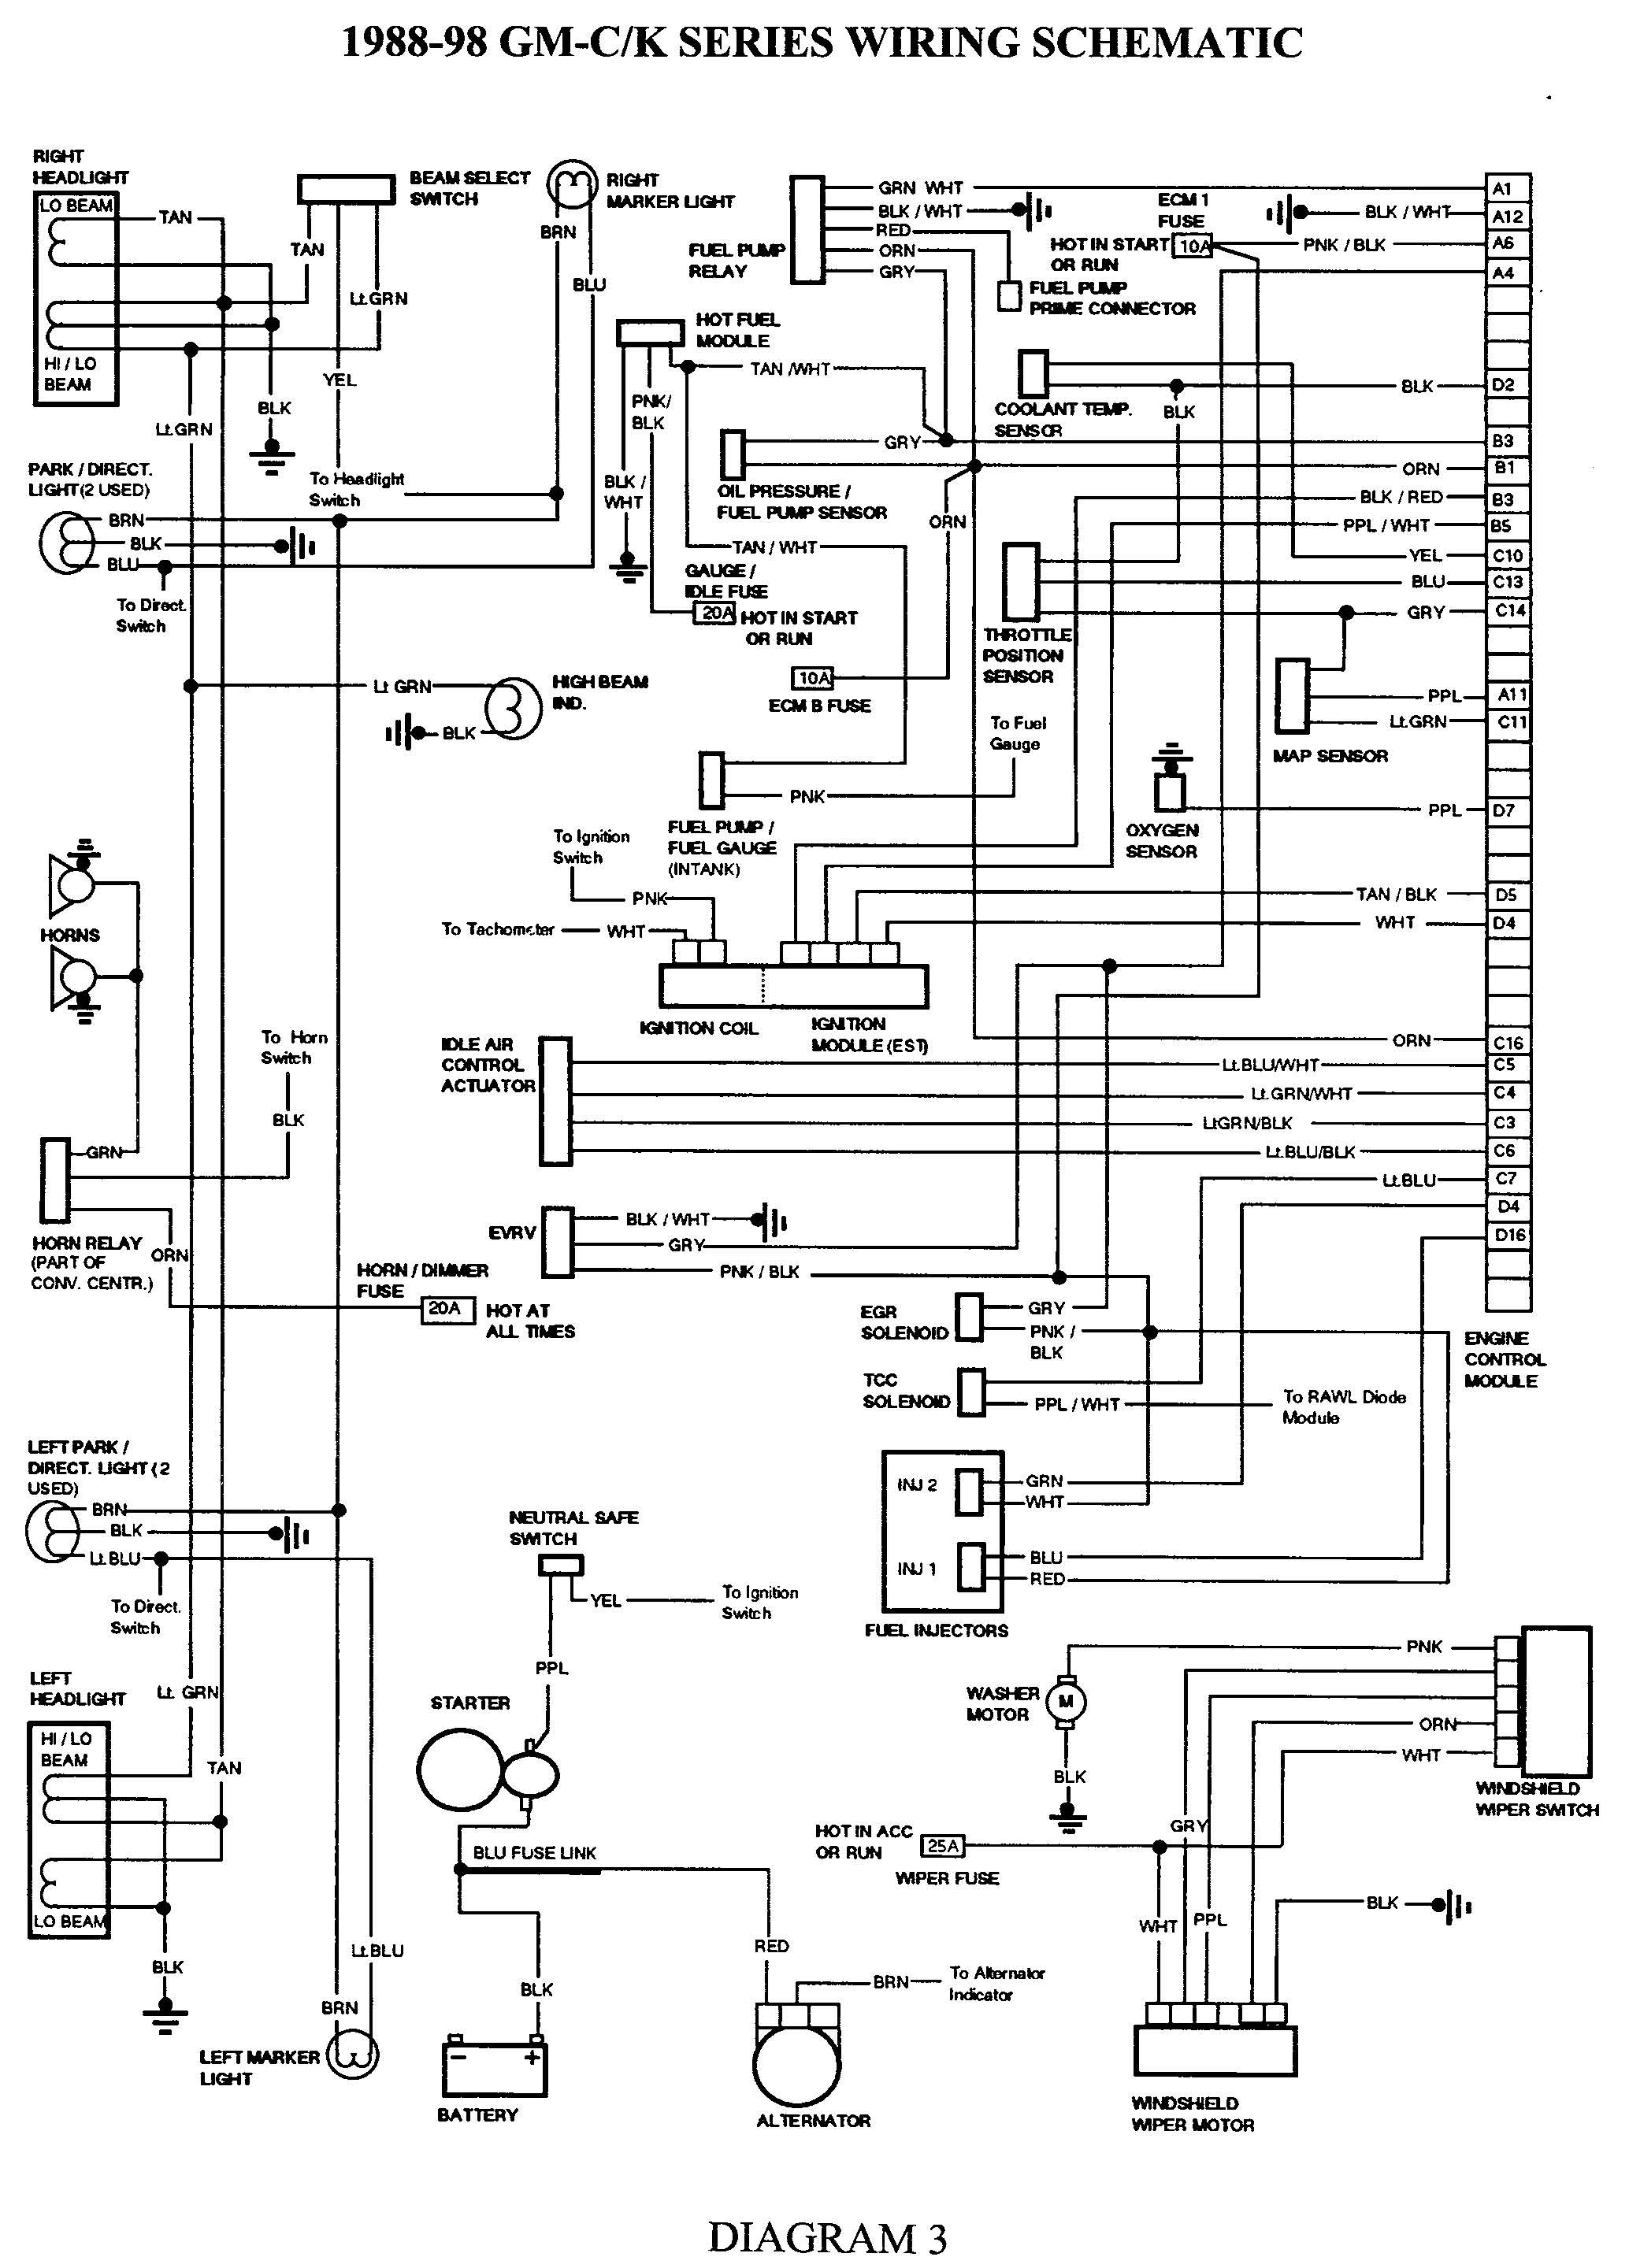 2000 Chevy Silverado Engine Diagram My Wiring